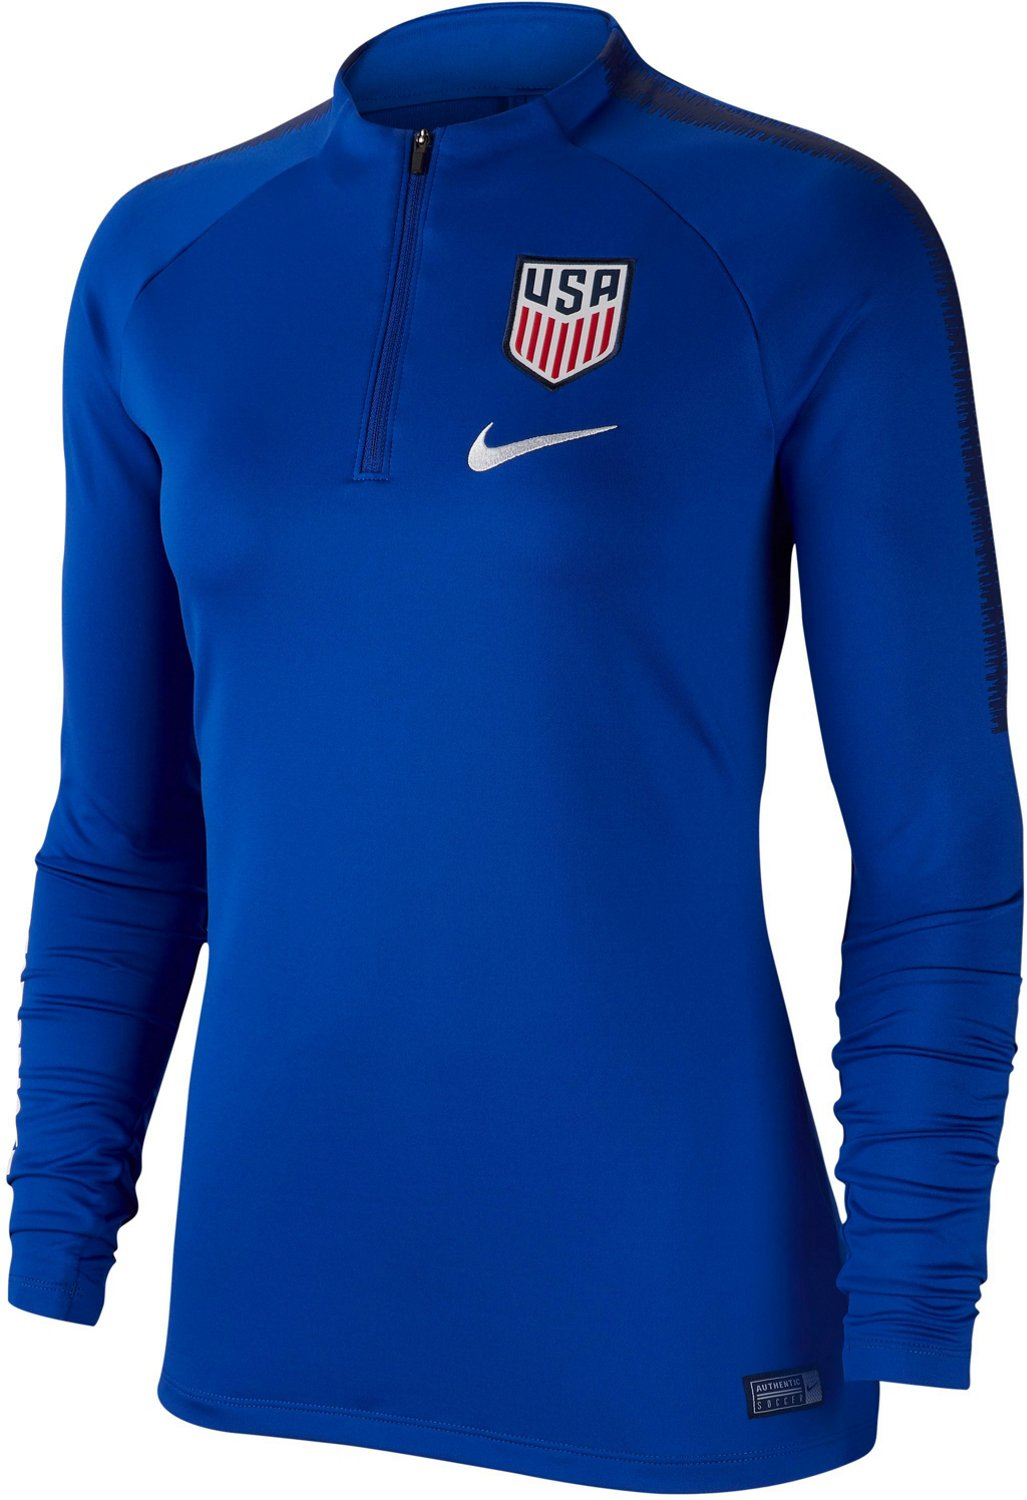 00dcc807 Nike Women's Dri-FIT USA Soccer Squad Drill 1/4 Zip Long Sleeve Top    Academy